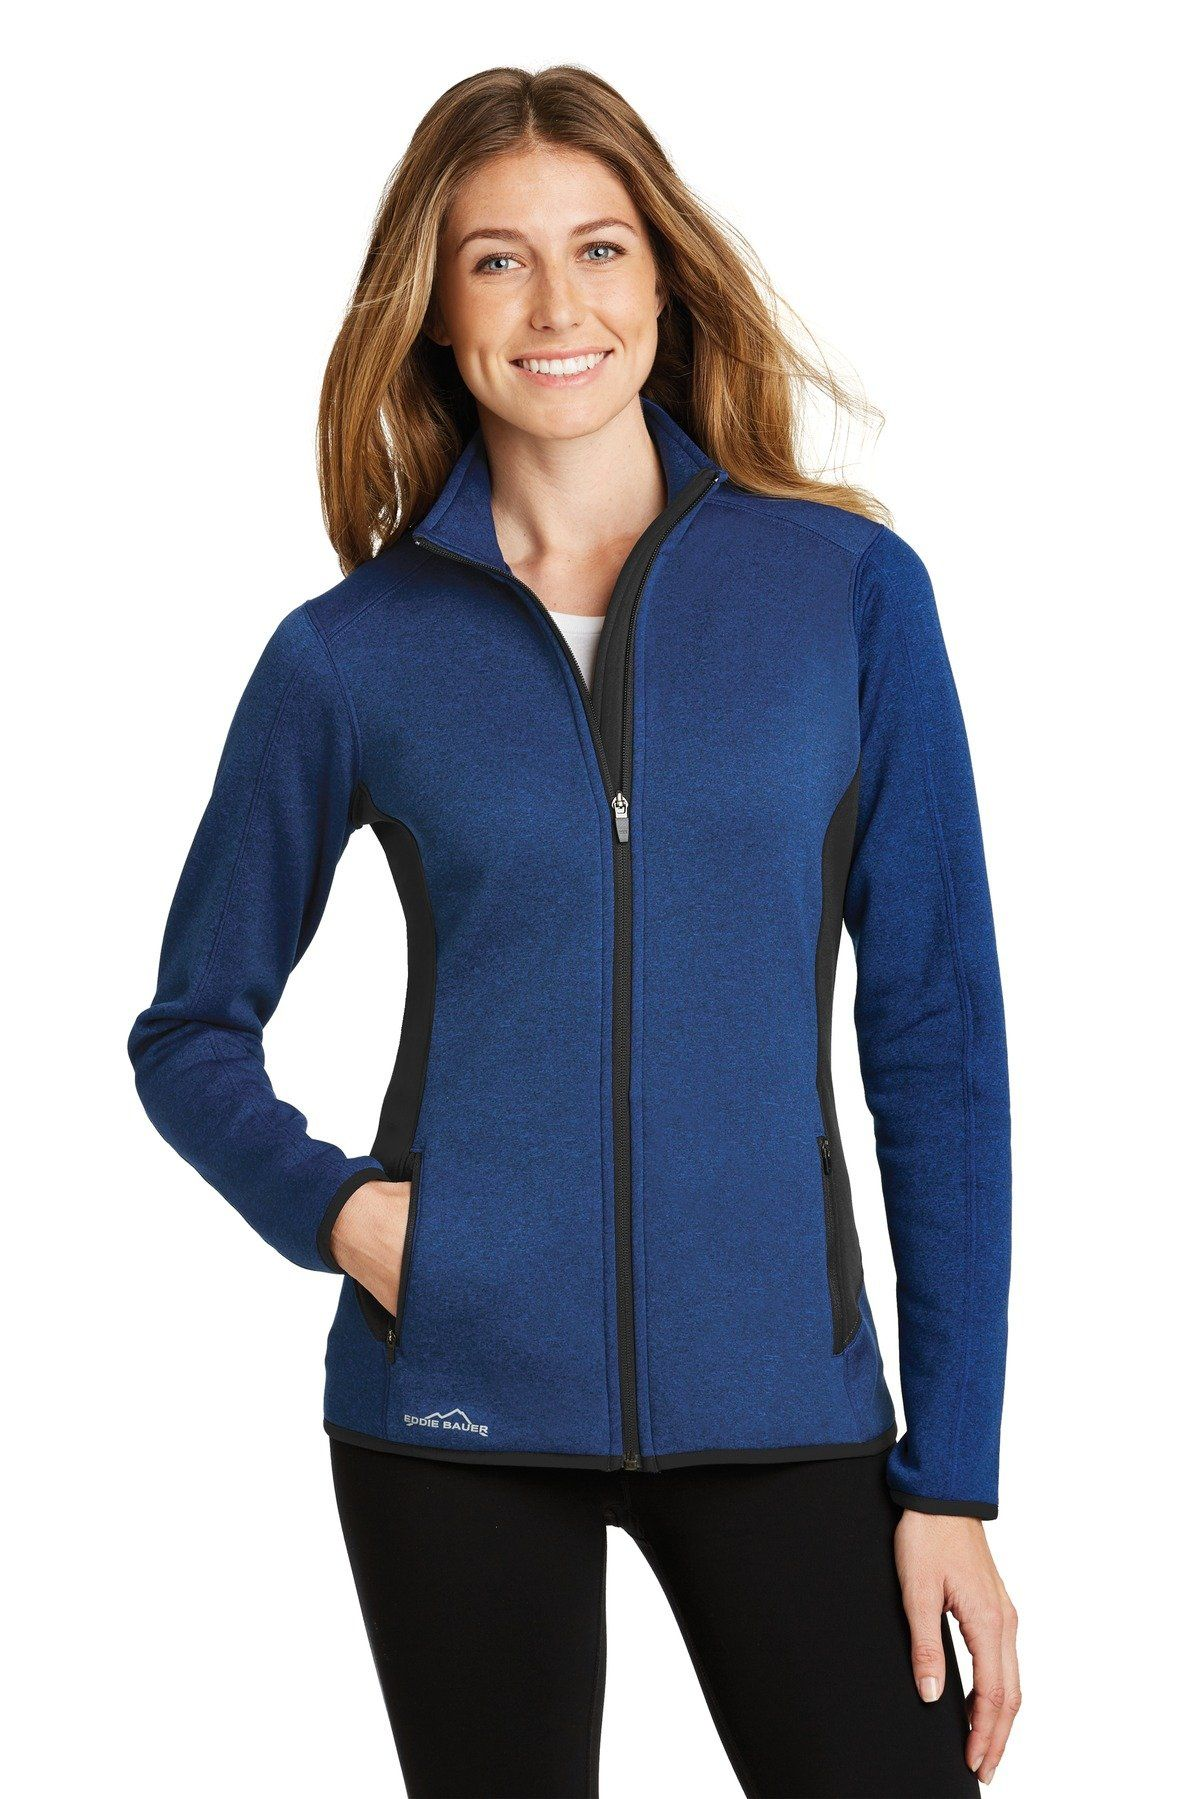 c20607bf3ea Eddie Bauer® Ladies Full-Zip Heather Stretch Fleece Jacket. EB239 ...